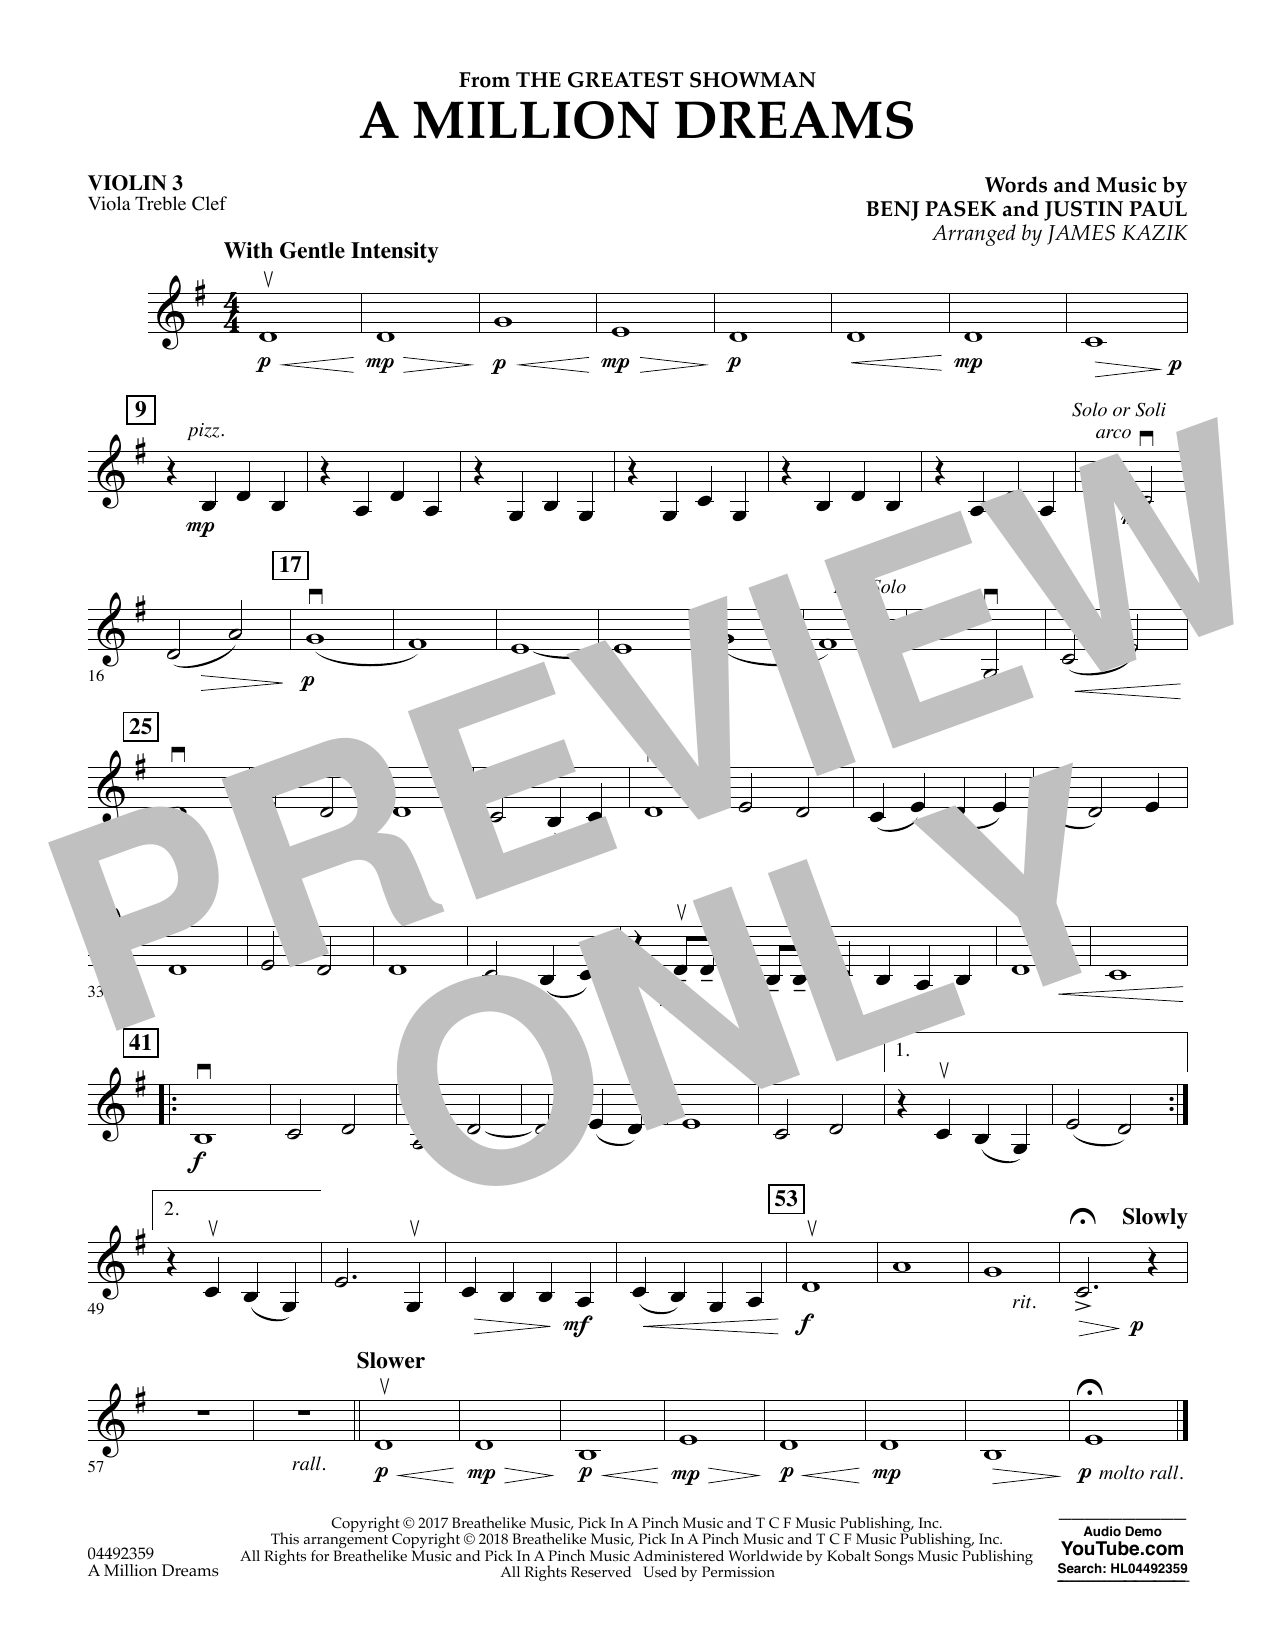 Pasek & Paul A Million Dreams (from The Greatest Showman) (arr. James Kazik) - Violin 3 (Viola Treble Clef) sheet music preview music notes and score for Orchestra including 1 page(s)